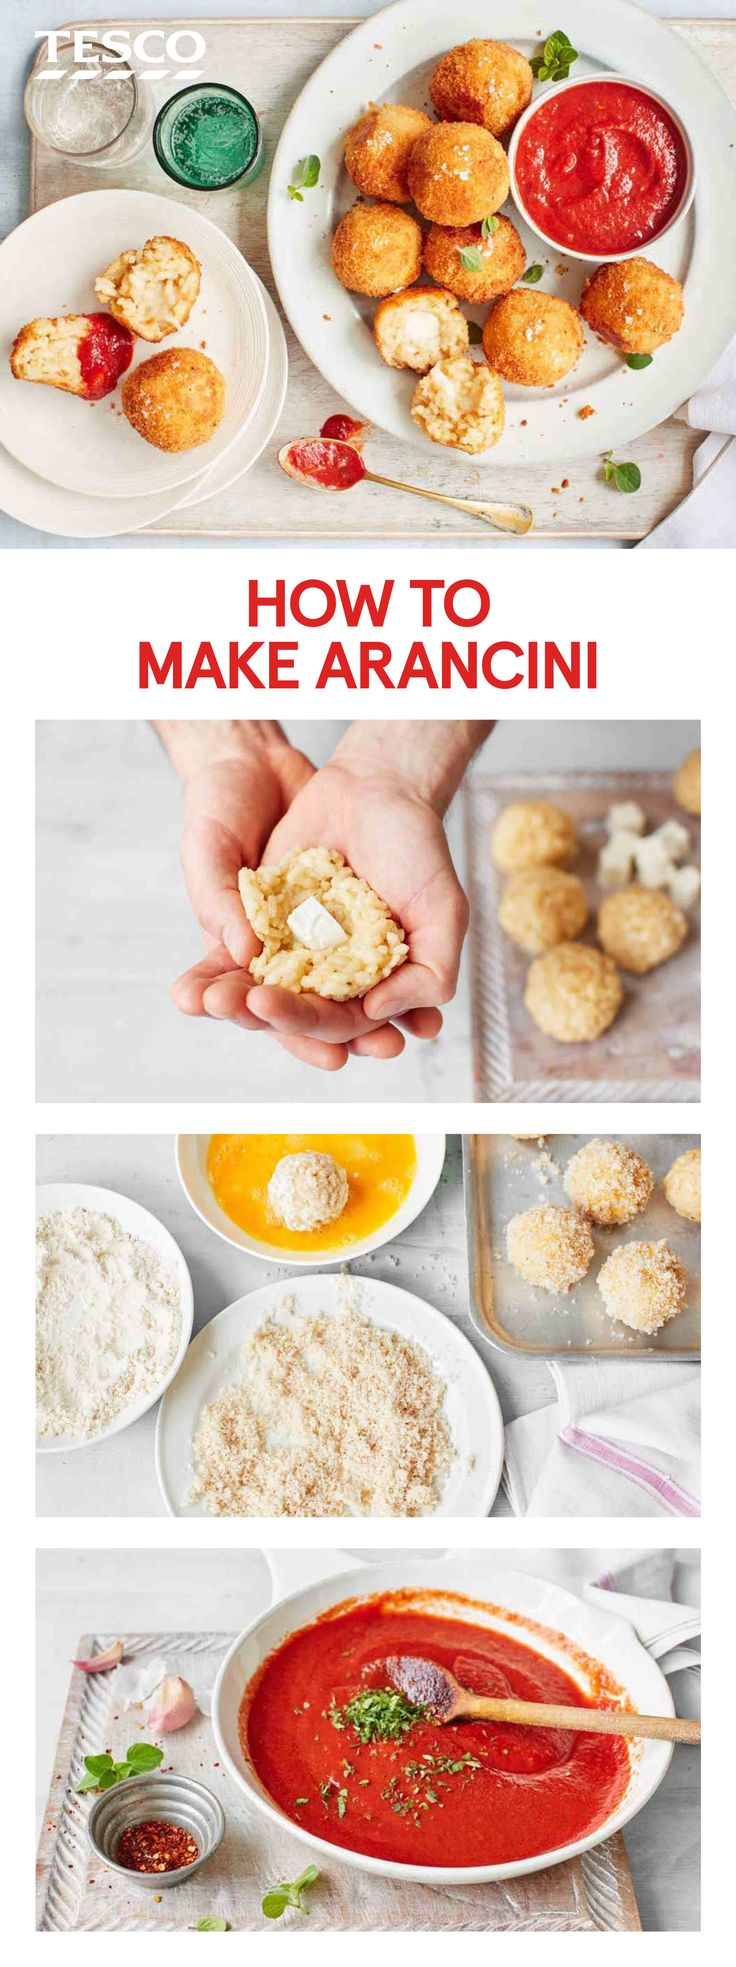 Italian recipes don't get much better than these arancini. A street food star, these sticky balls of risotto are filled with gooey mozzarella, fried until golden and served with a tomato sauce. | Tesco